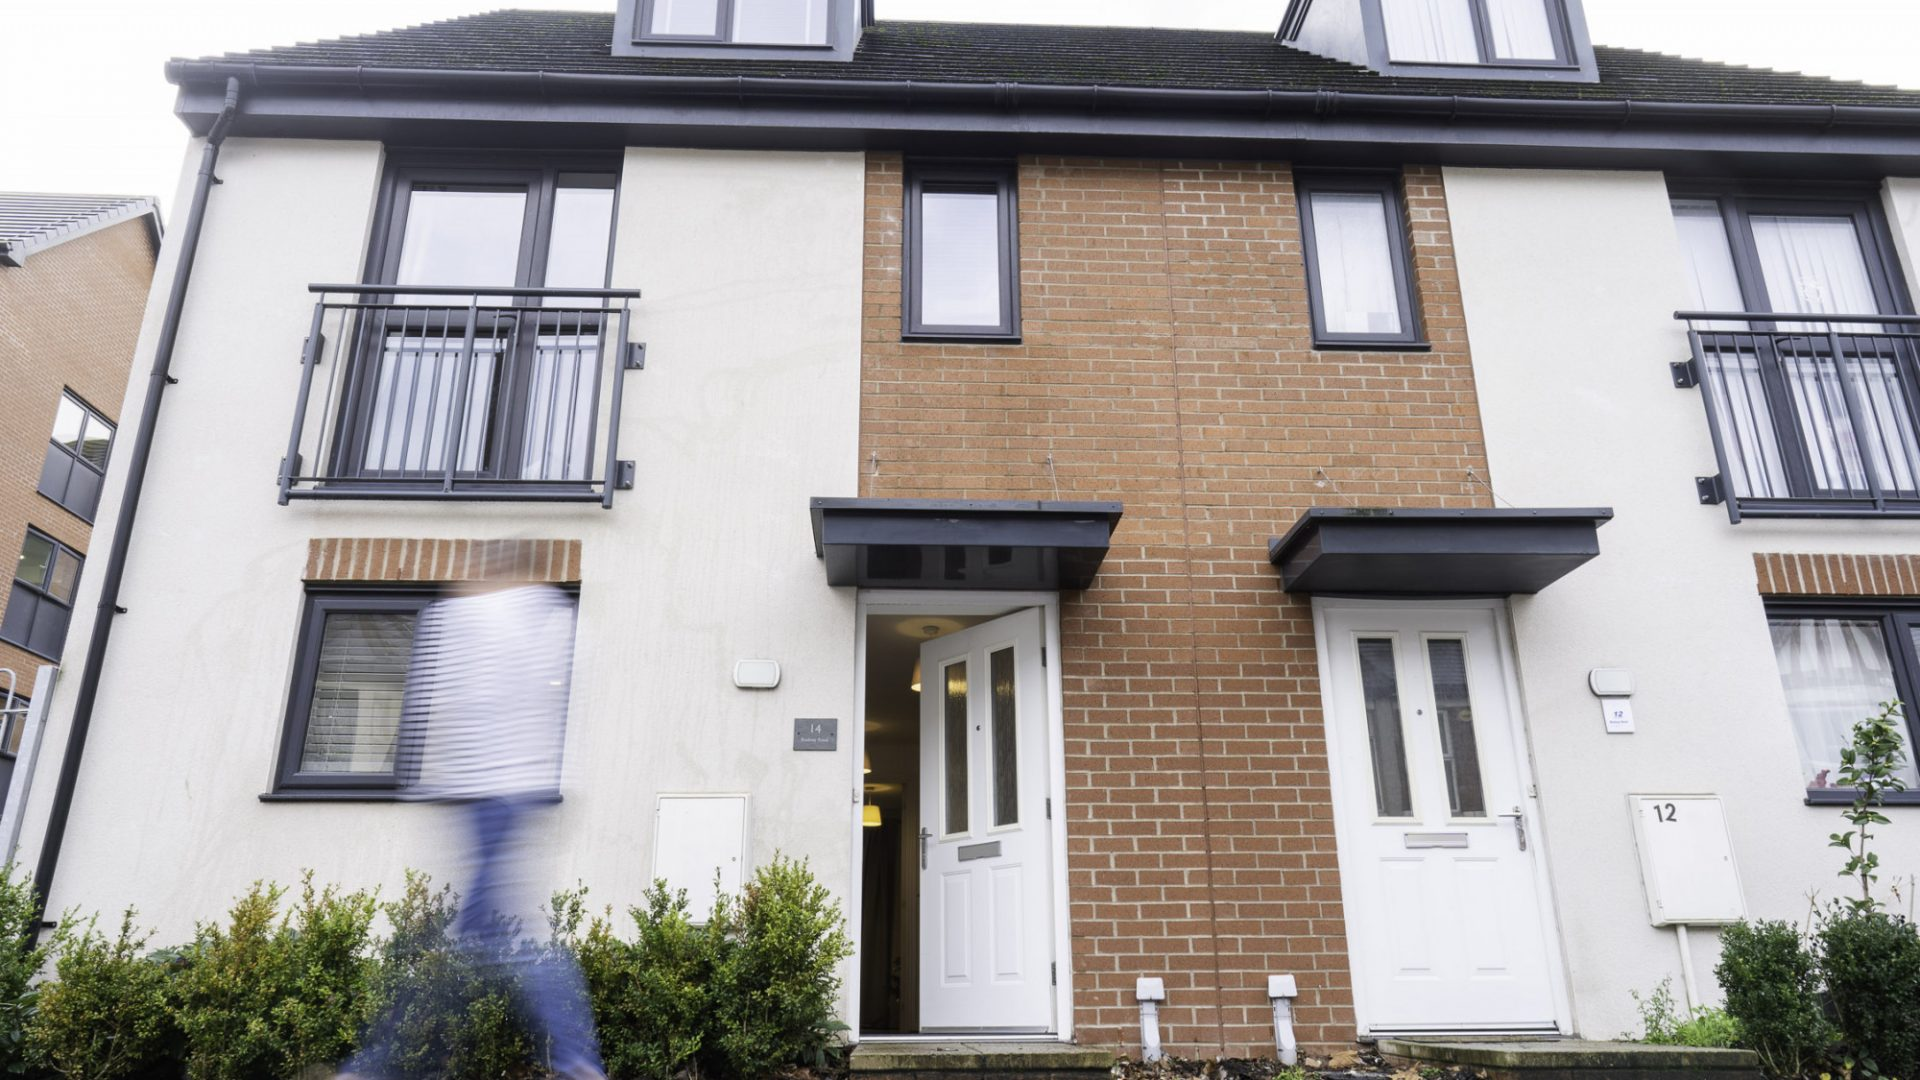 Rodney Road, Newport for sale with Mr and Mrs Clarke estate agent